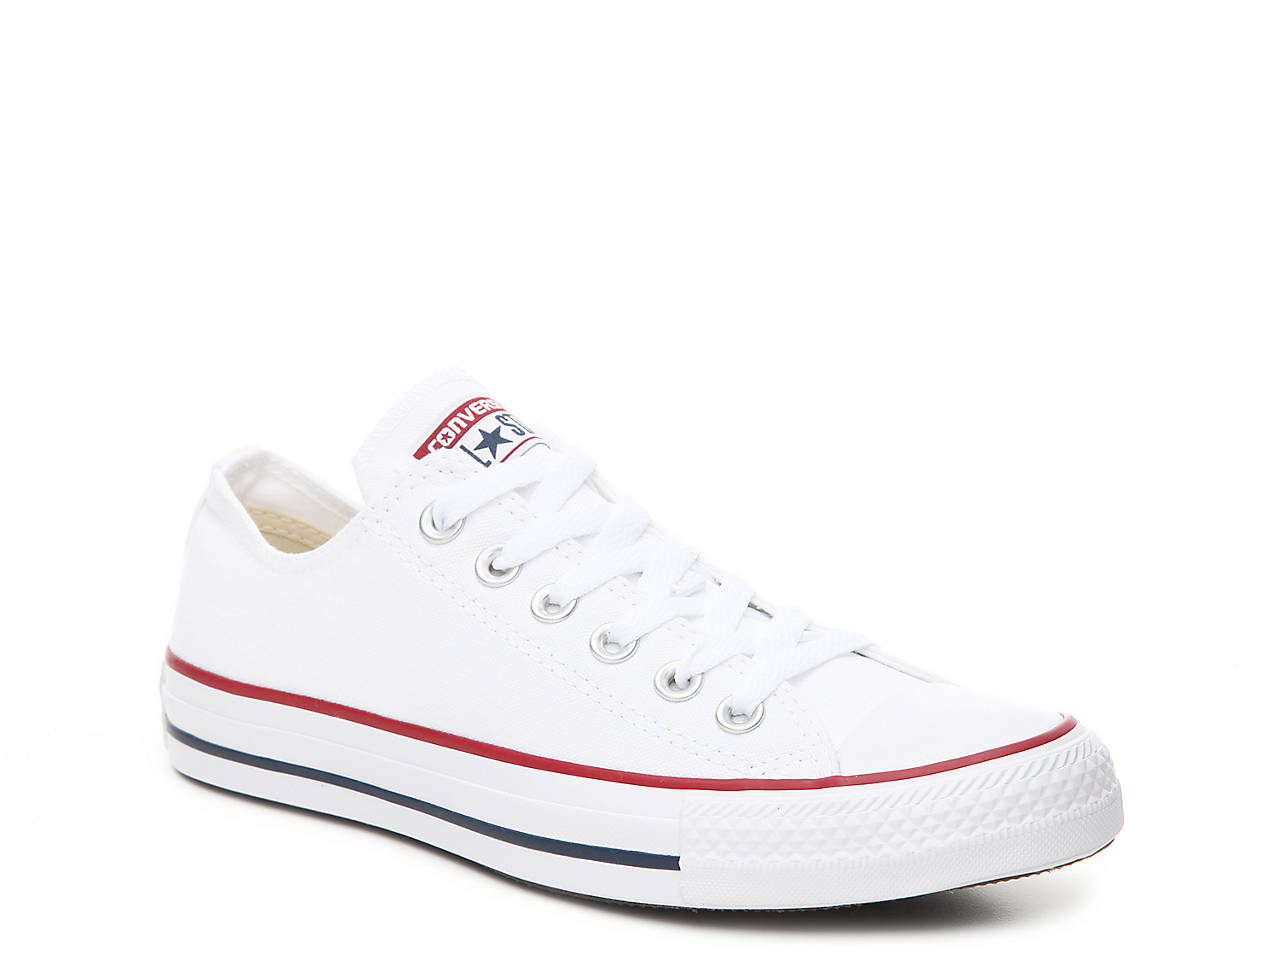 e27a4407fc3 Converse Chuck Taylor All Star Sneaker - Women s Women s Shoes